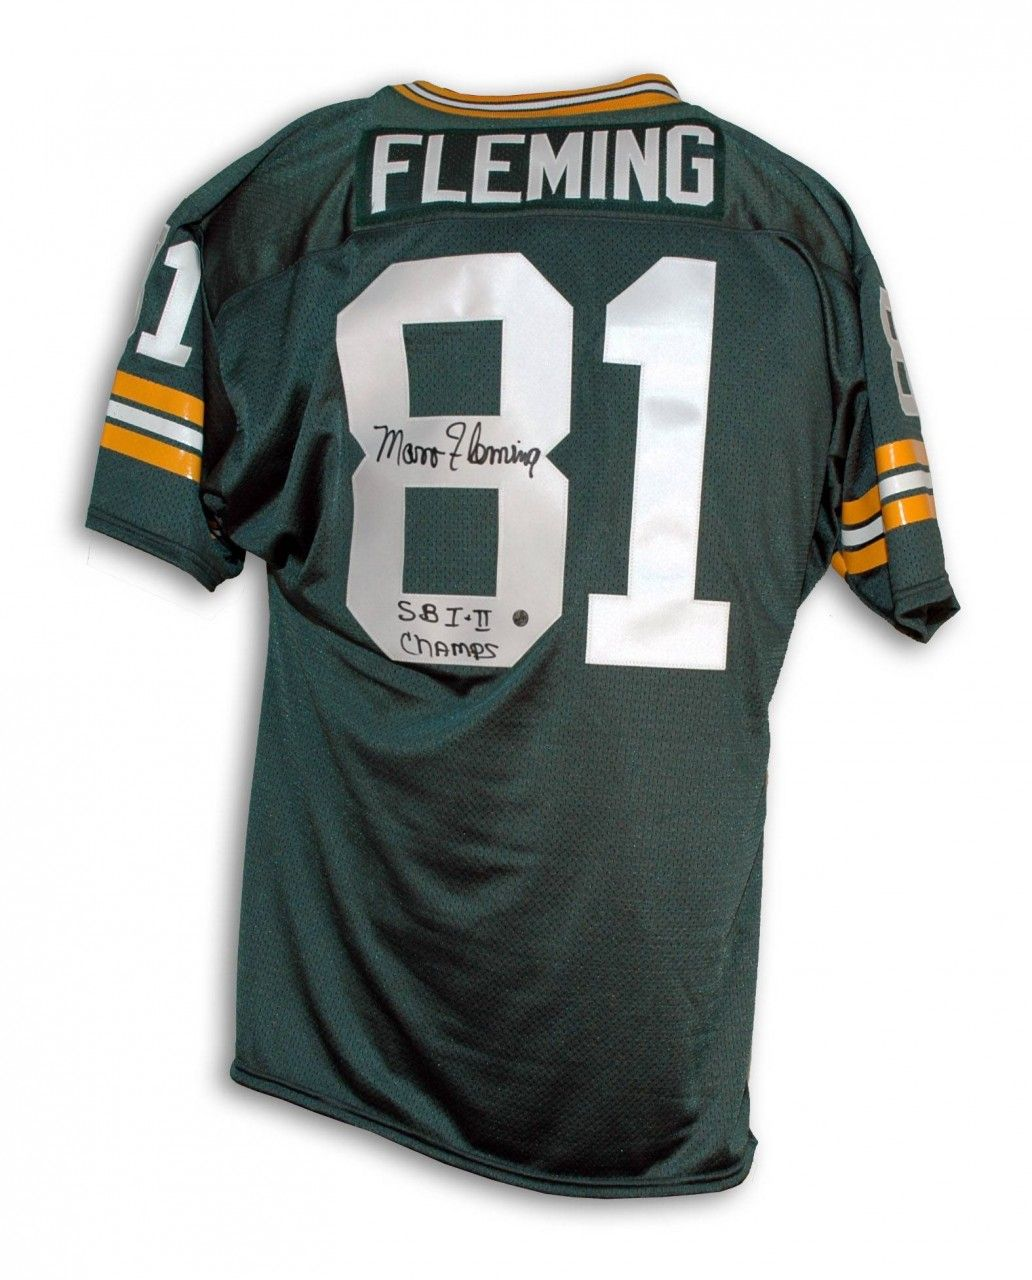 Aaa Sports Memorabilia Llc Marv Fleming Green Bay Packers Autographed Green Throwback Jersey Inscribed Sb I Ii Cha Green Bay Packers Green Bay Nfl Green Bay